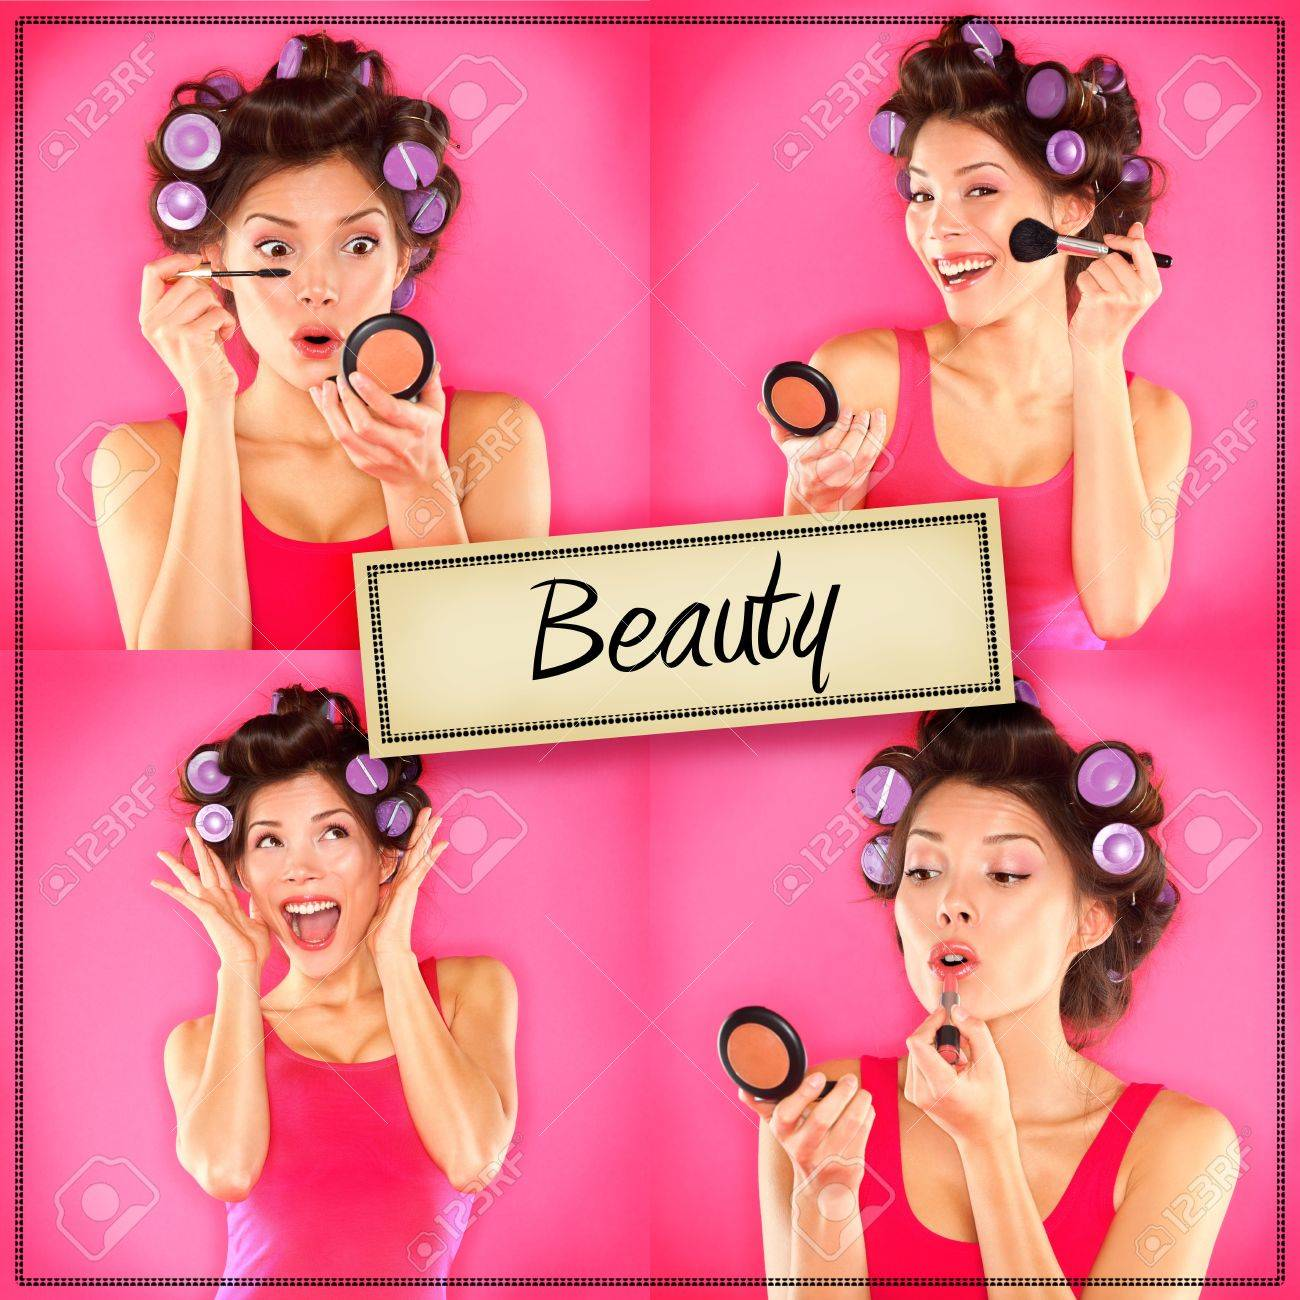 Beauty woman makeup concept collage series Standard-Bild - 21462898